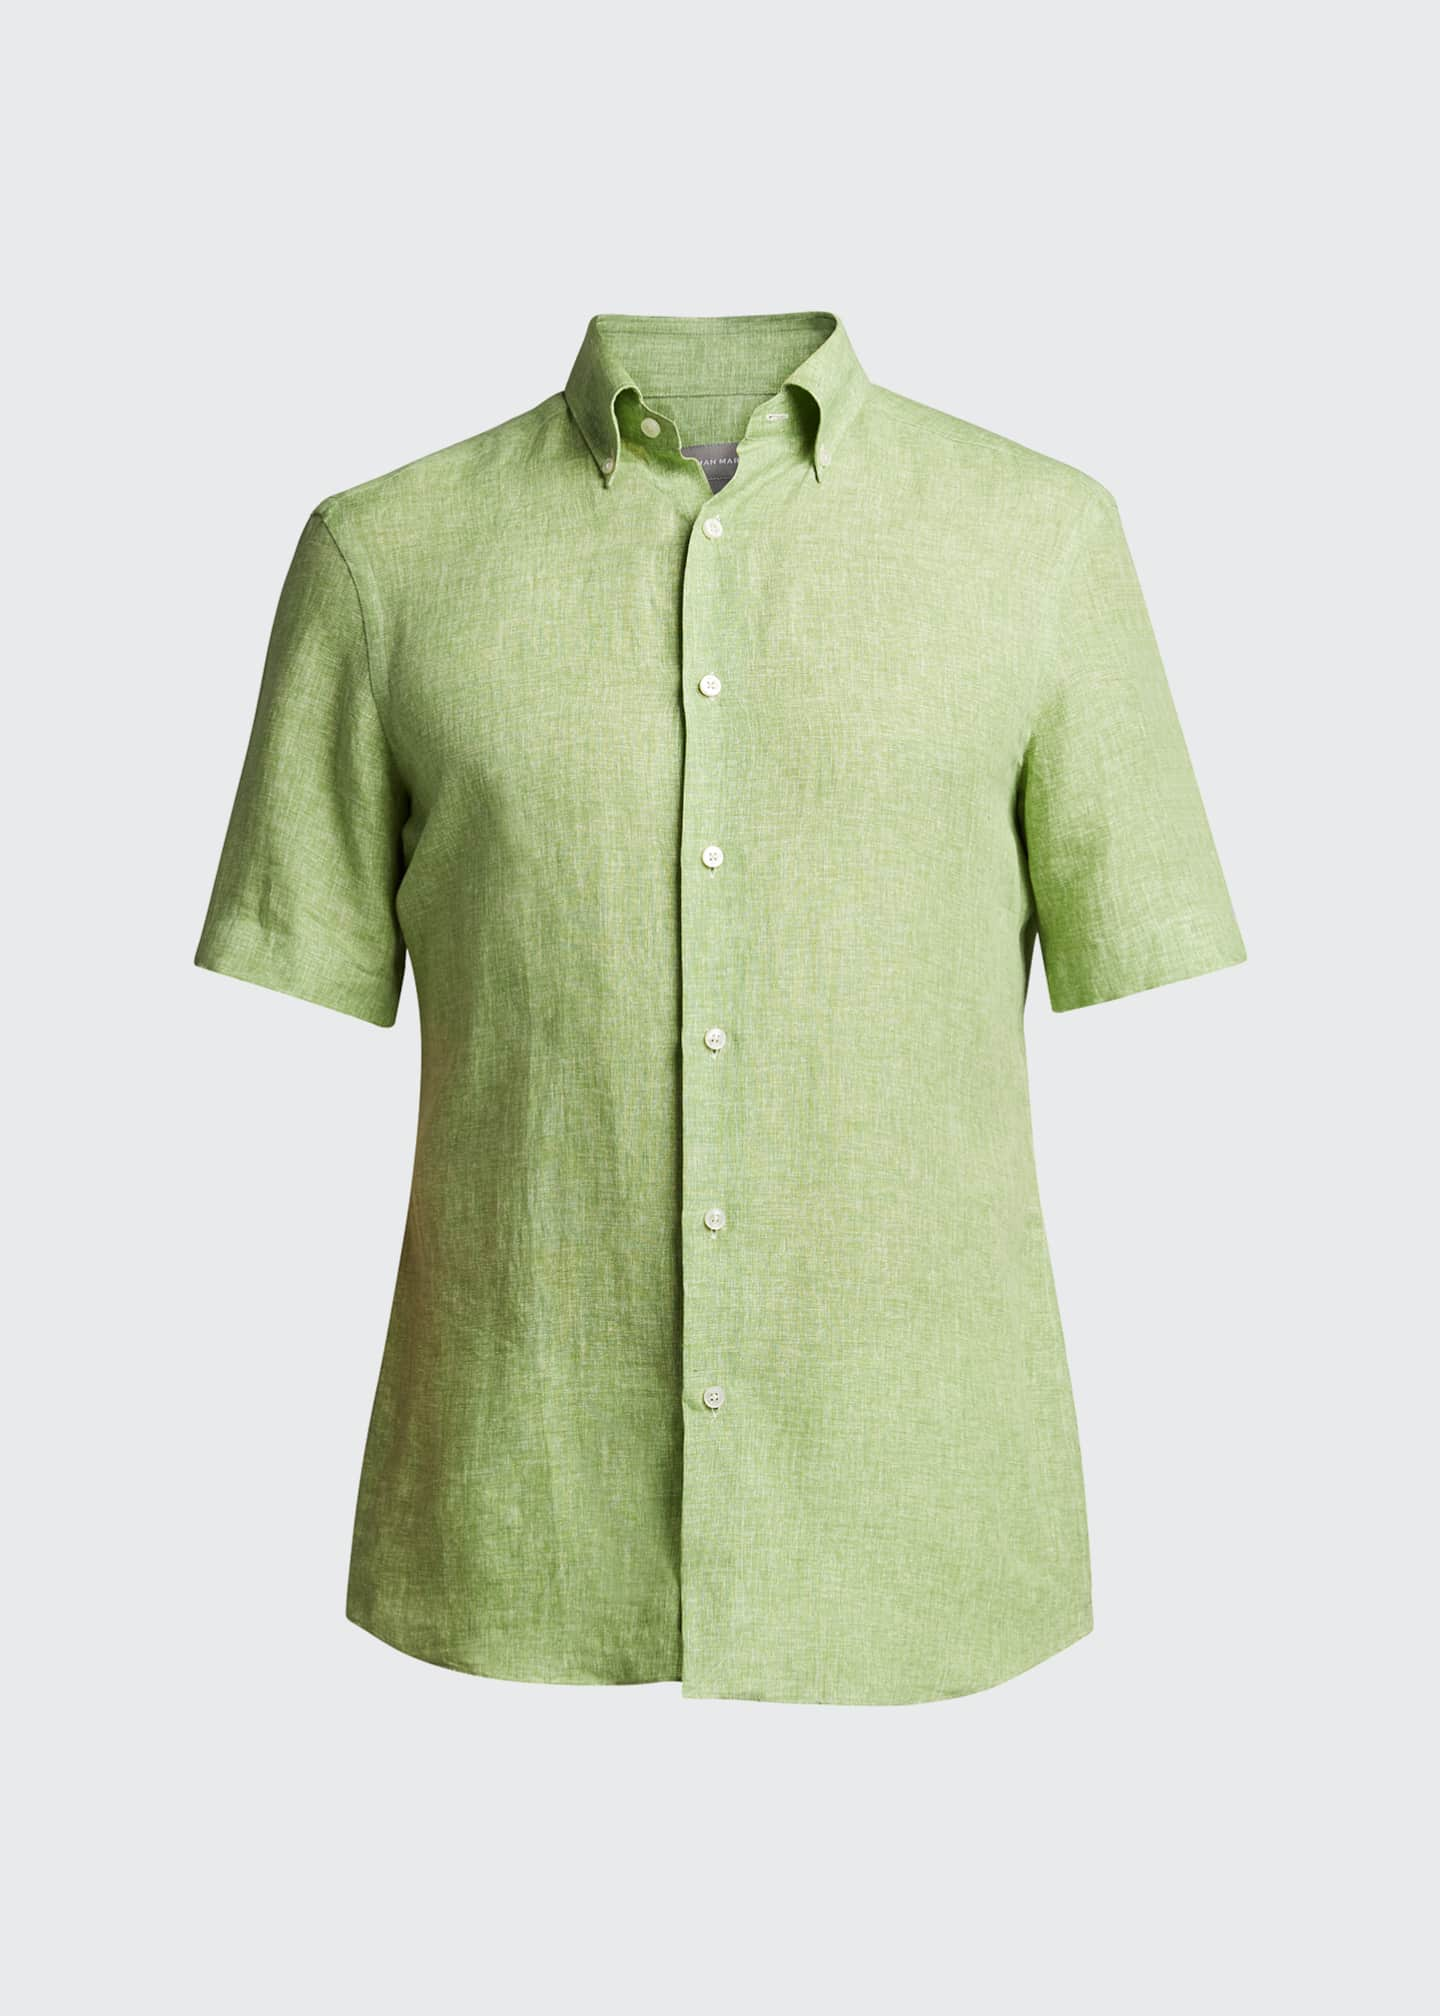 Image 5 of 5: Men's Solid Short-Sleeve Yarn-Dyed Sport Shirt